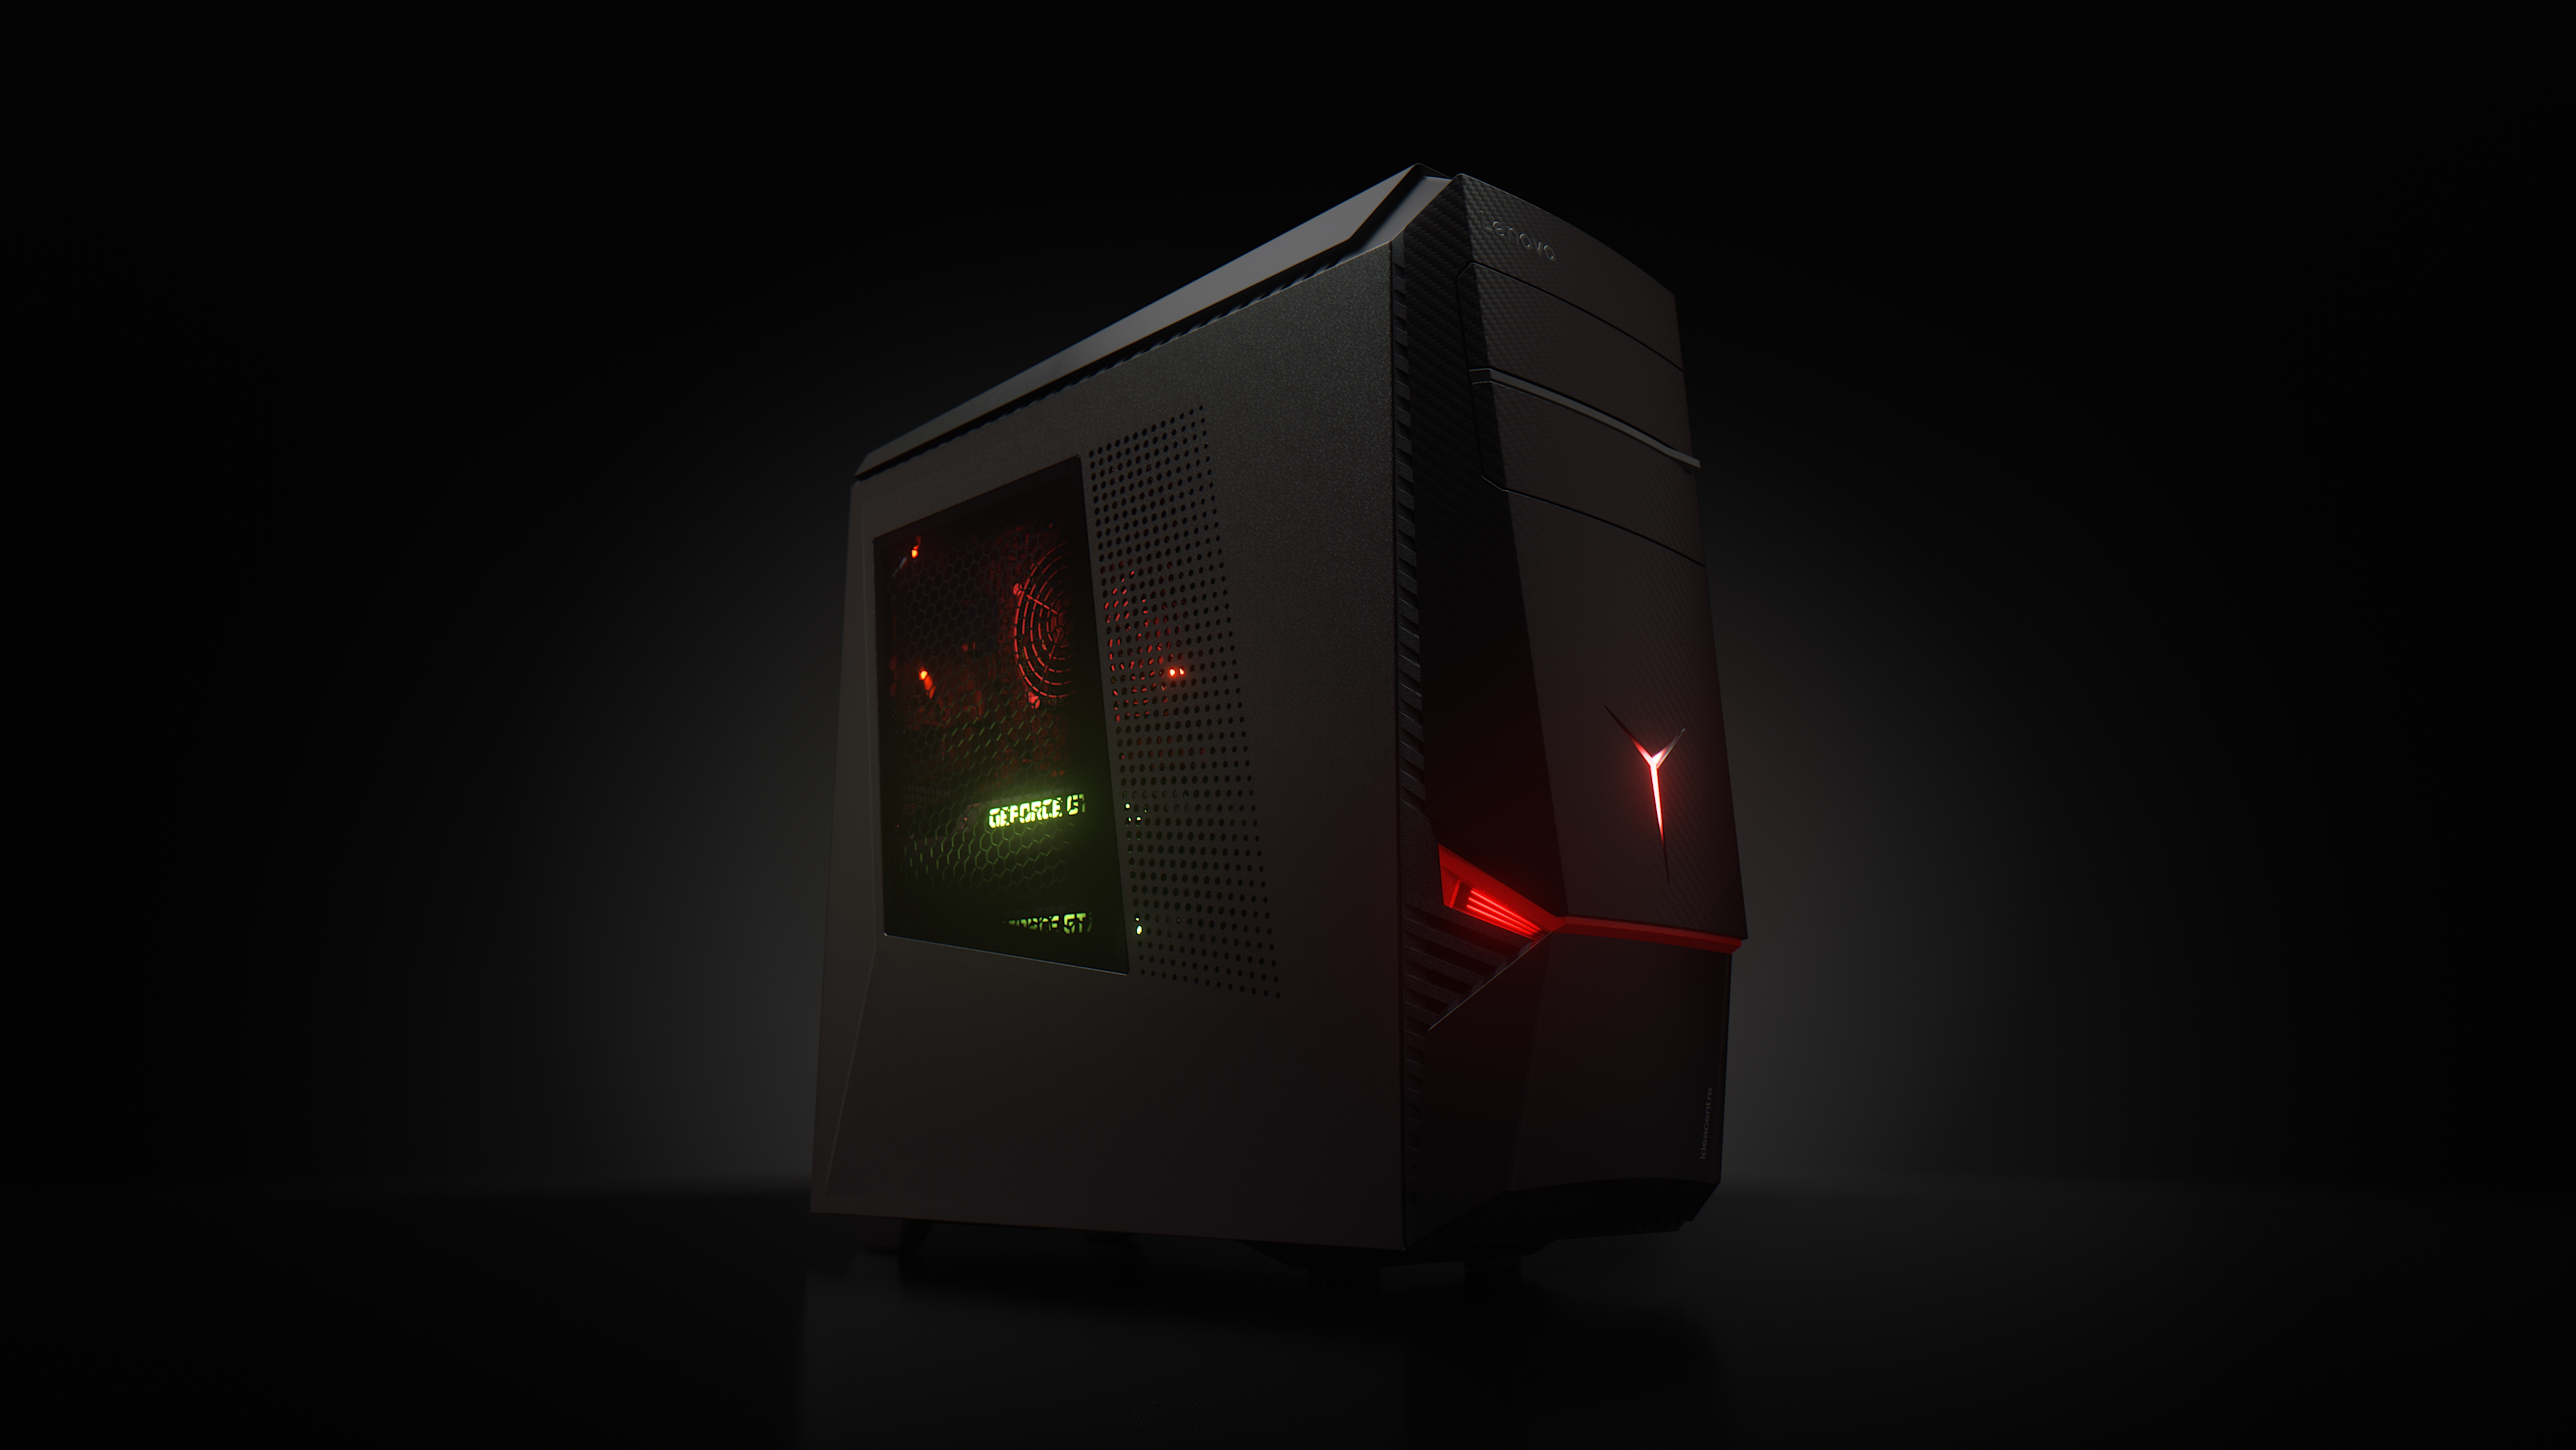 The gaming sub-brand is now considered part of the computing scene